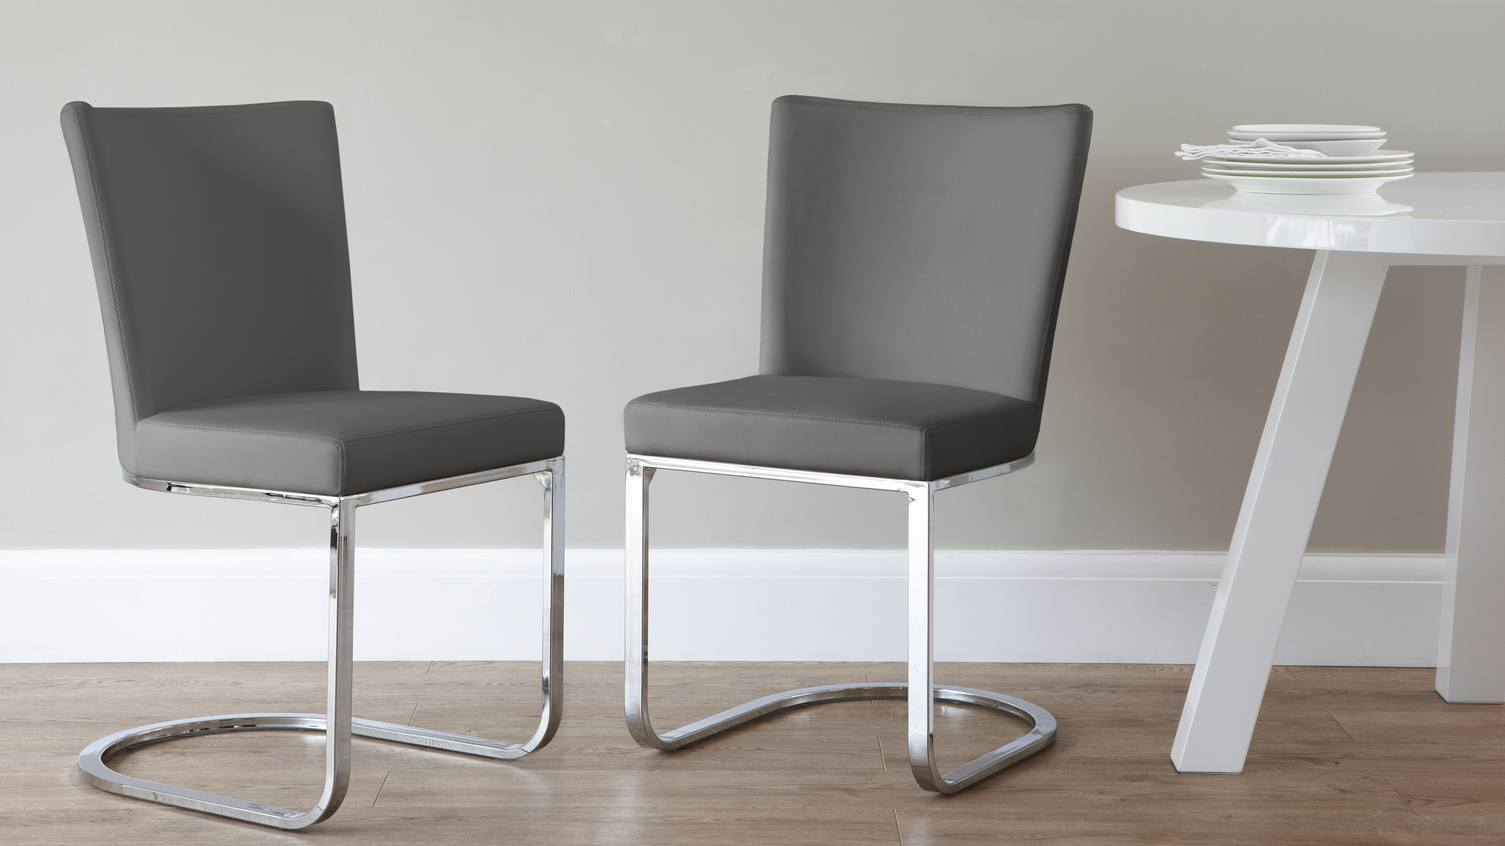 Grey Leather Dining Room Chairs Duggspace – Gray Leather Dining Room Chairs